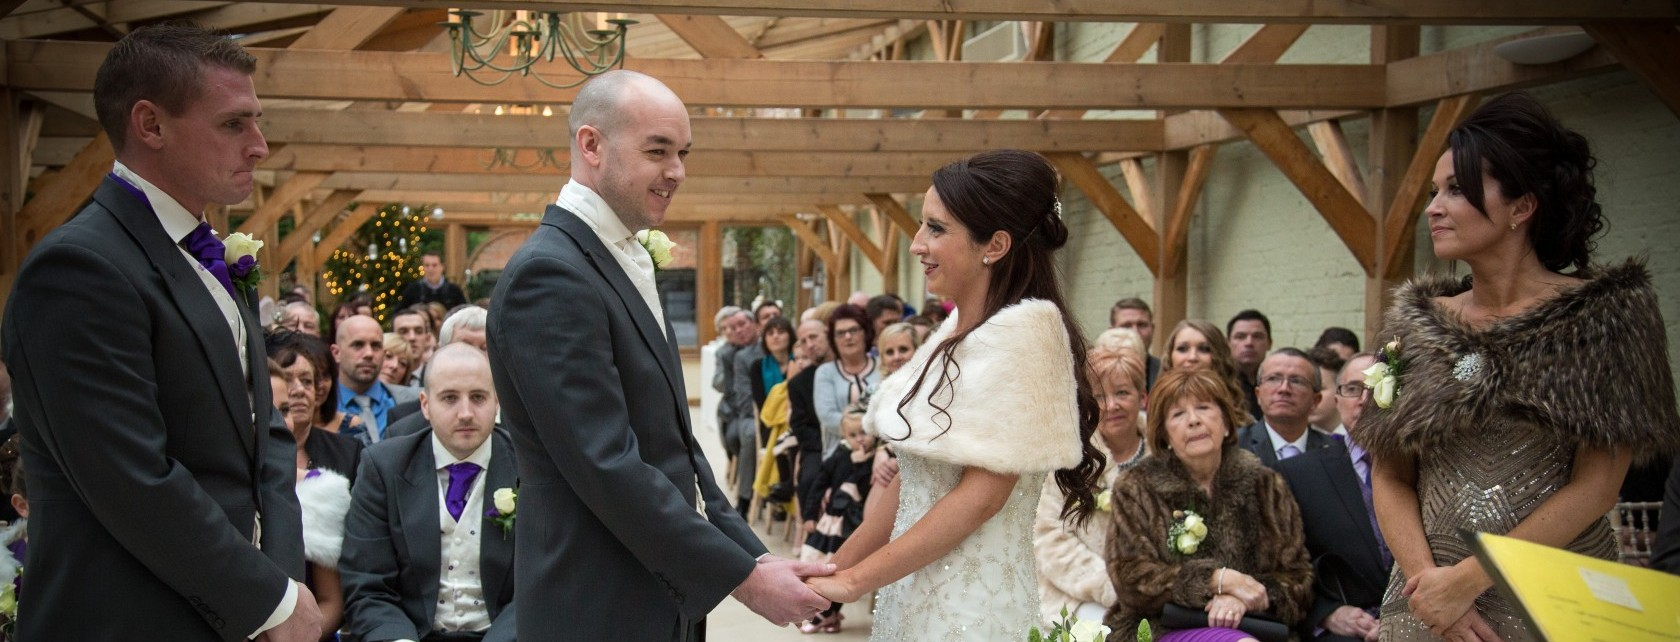 Wedding Photography Packages Essex